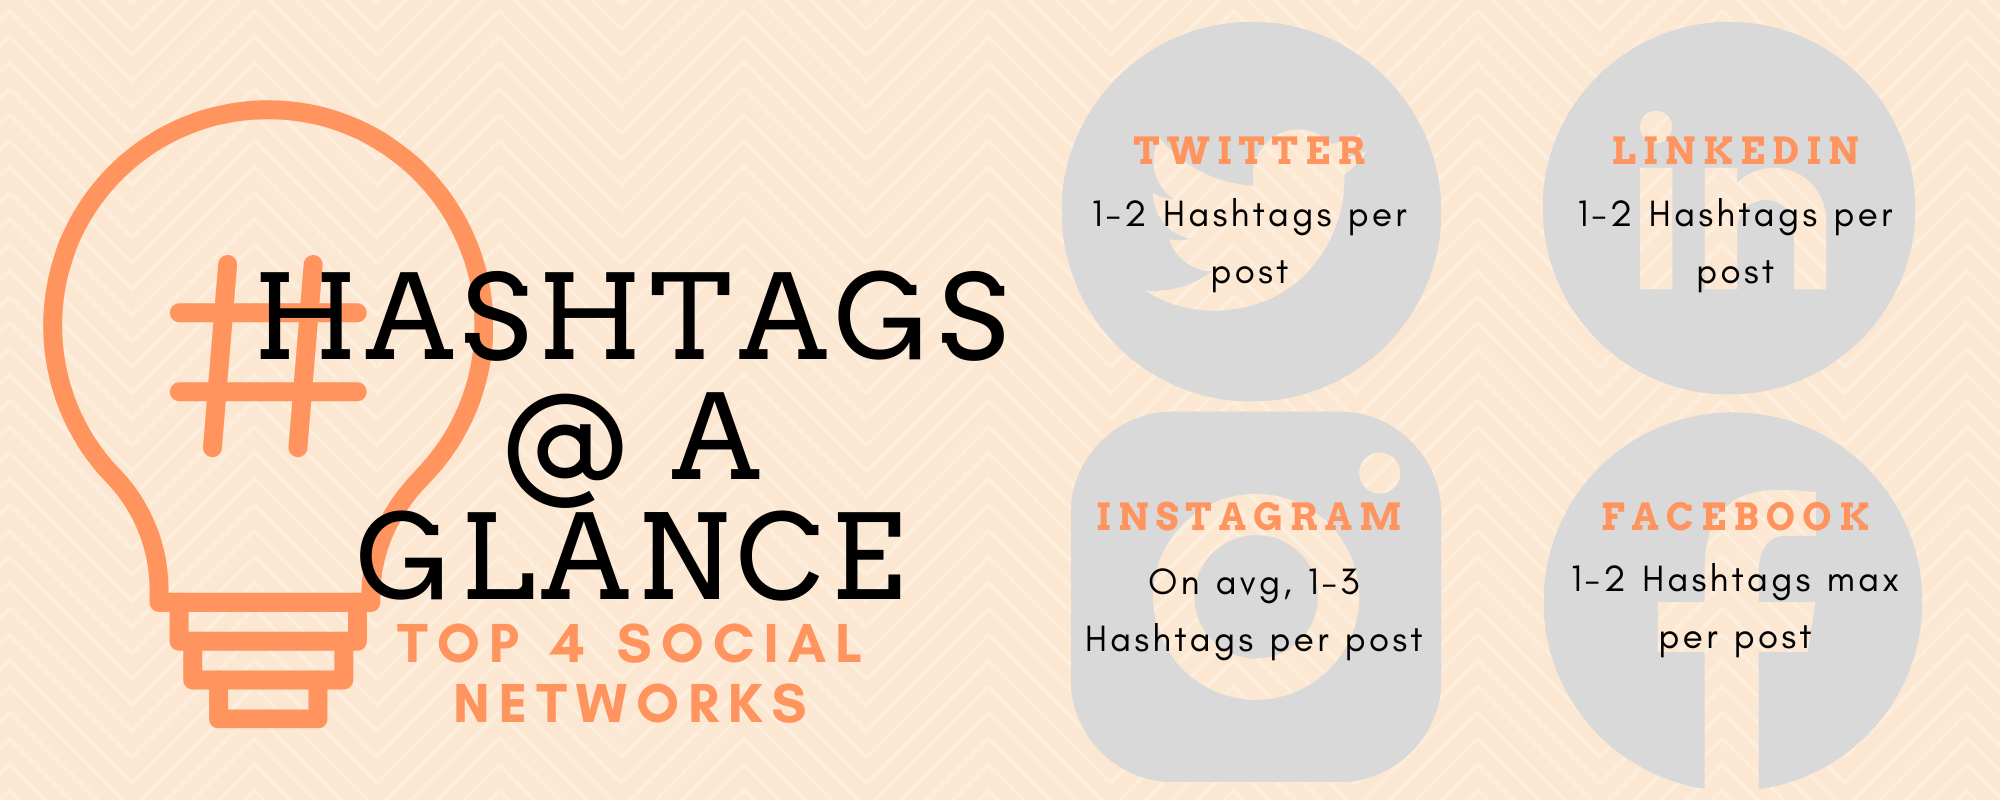 Hashtags per Post by Network